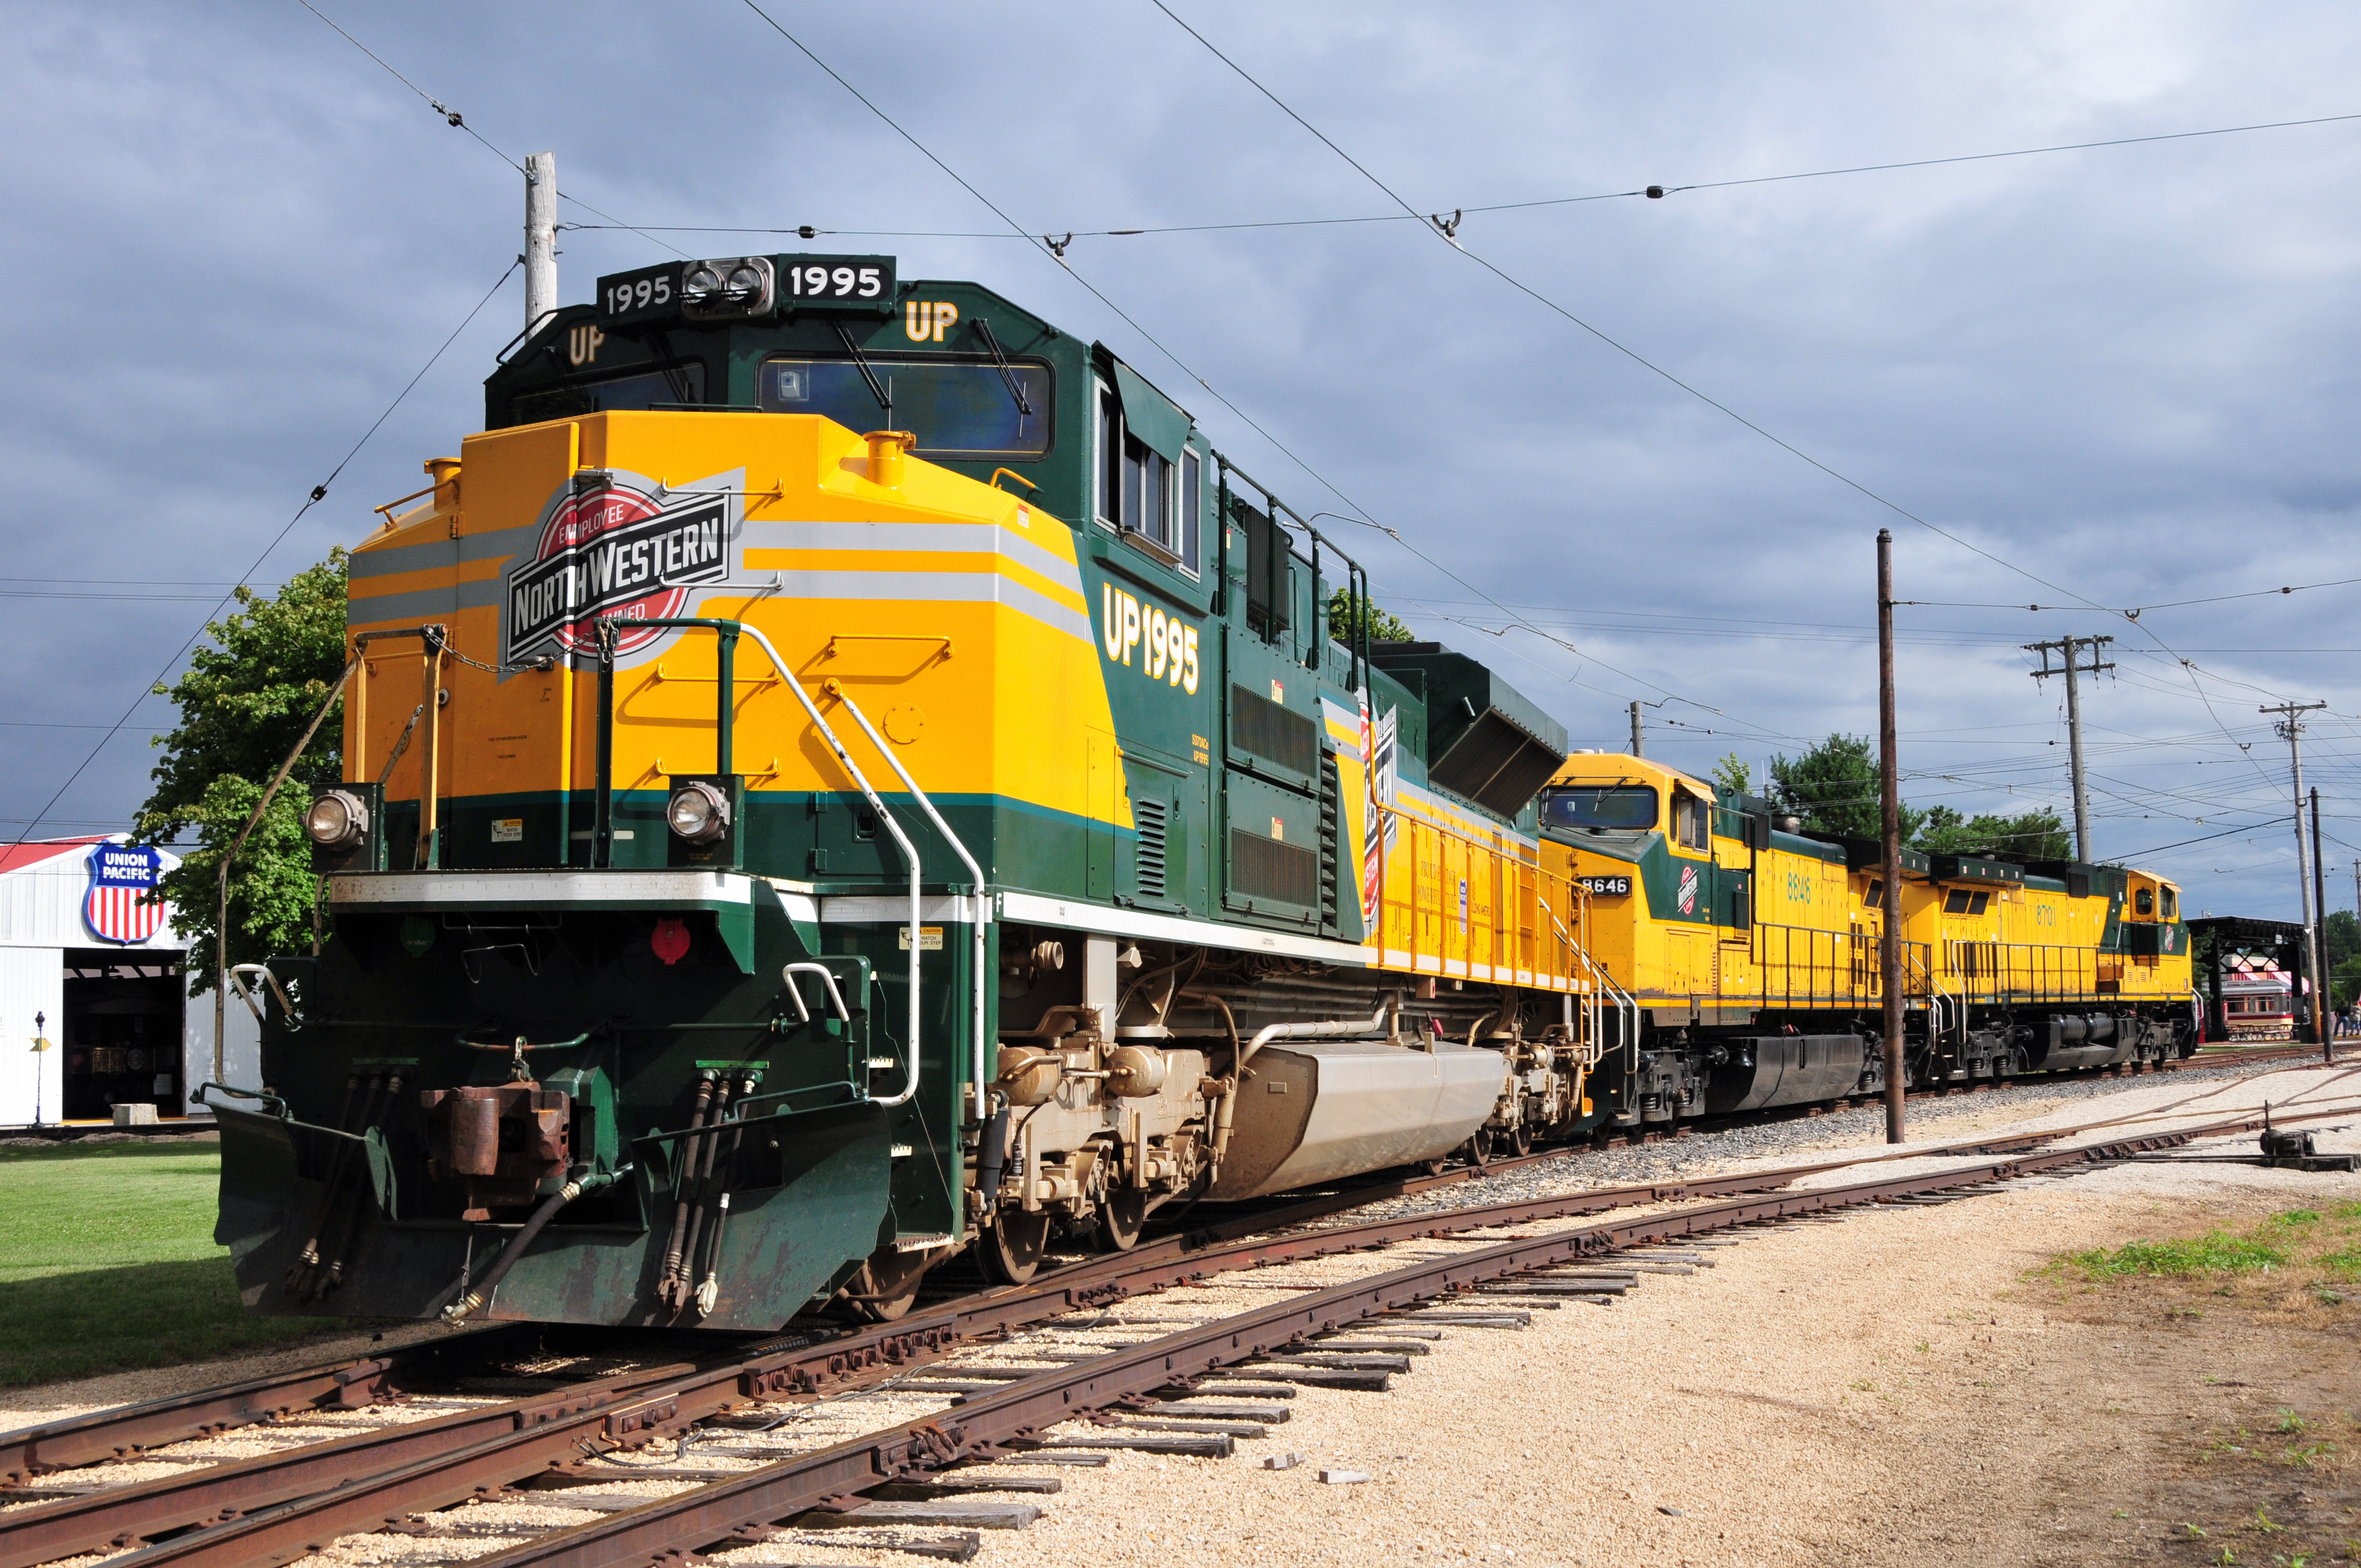 trains vehicles railroads train HD Wallpaper